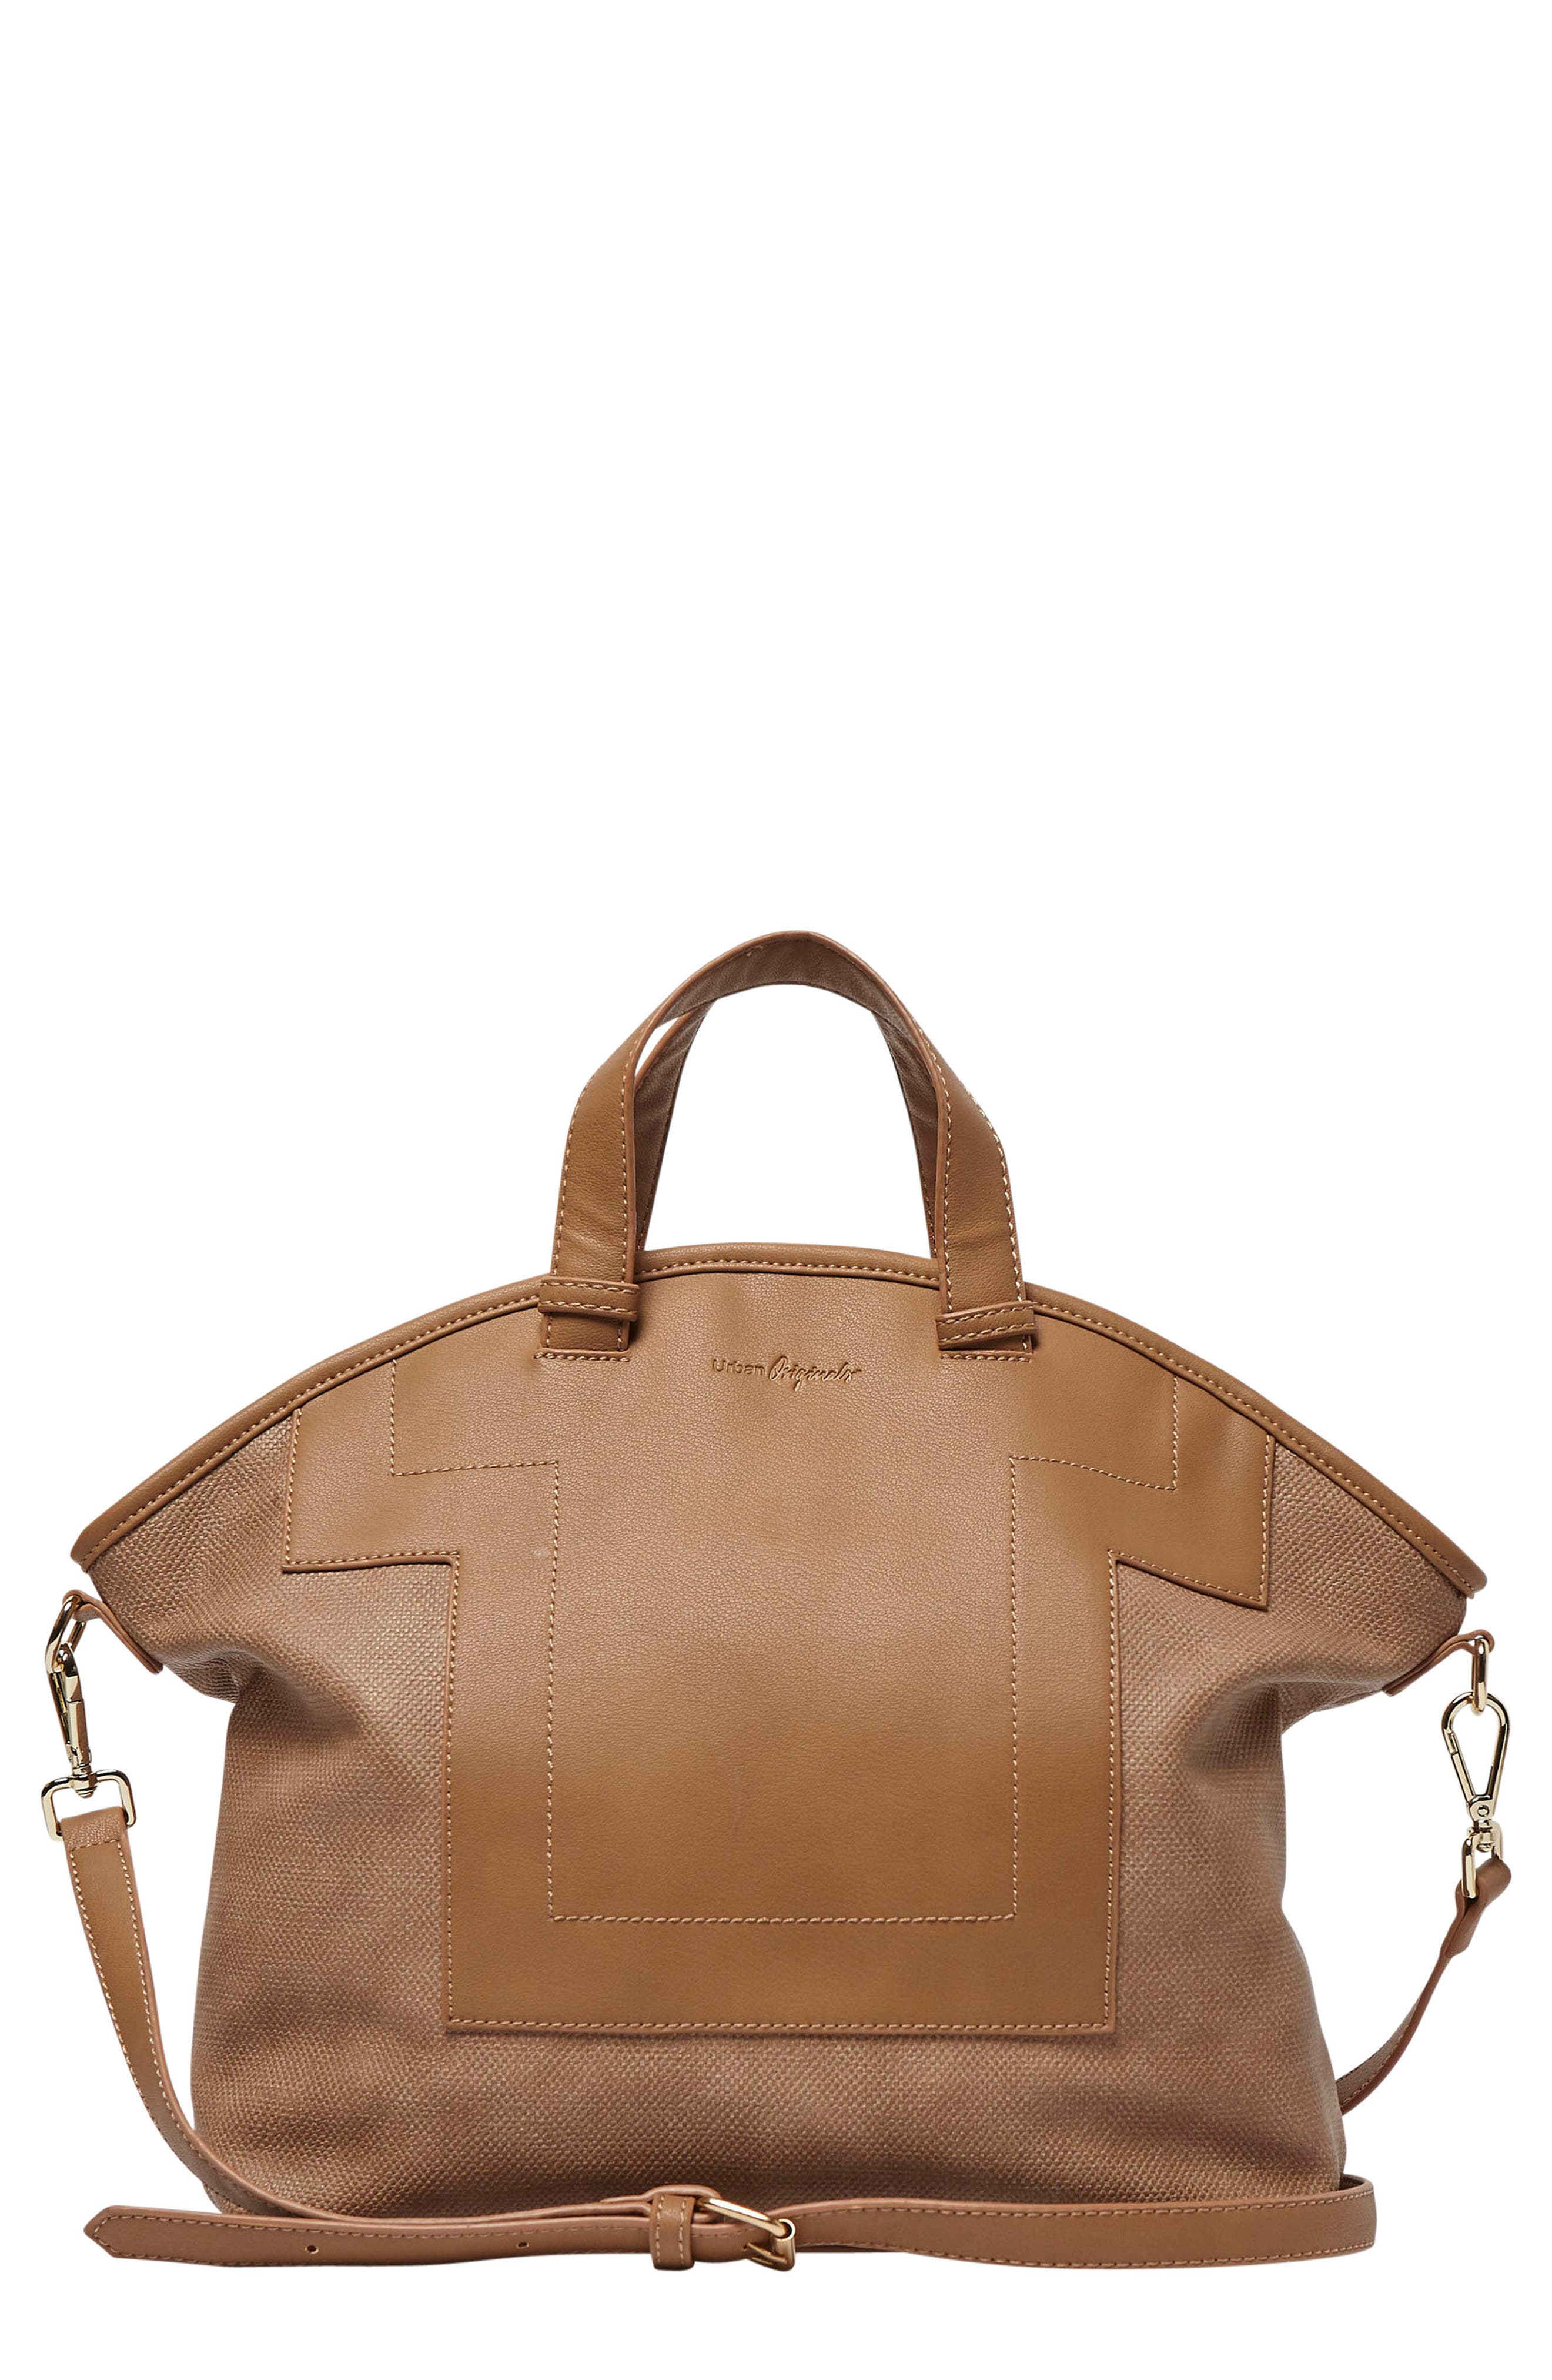 Urban Originals Break Away Vegan Leather Tote